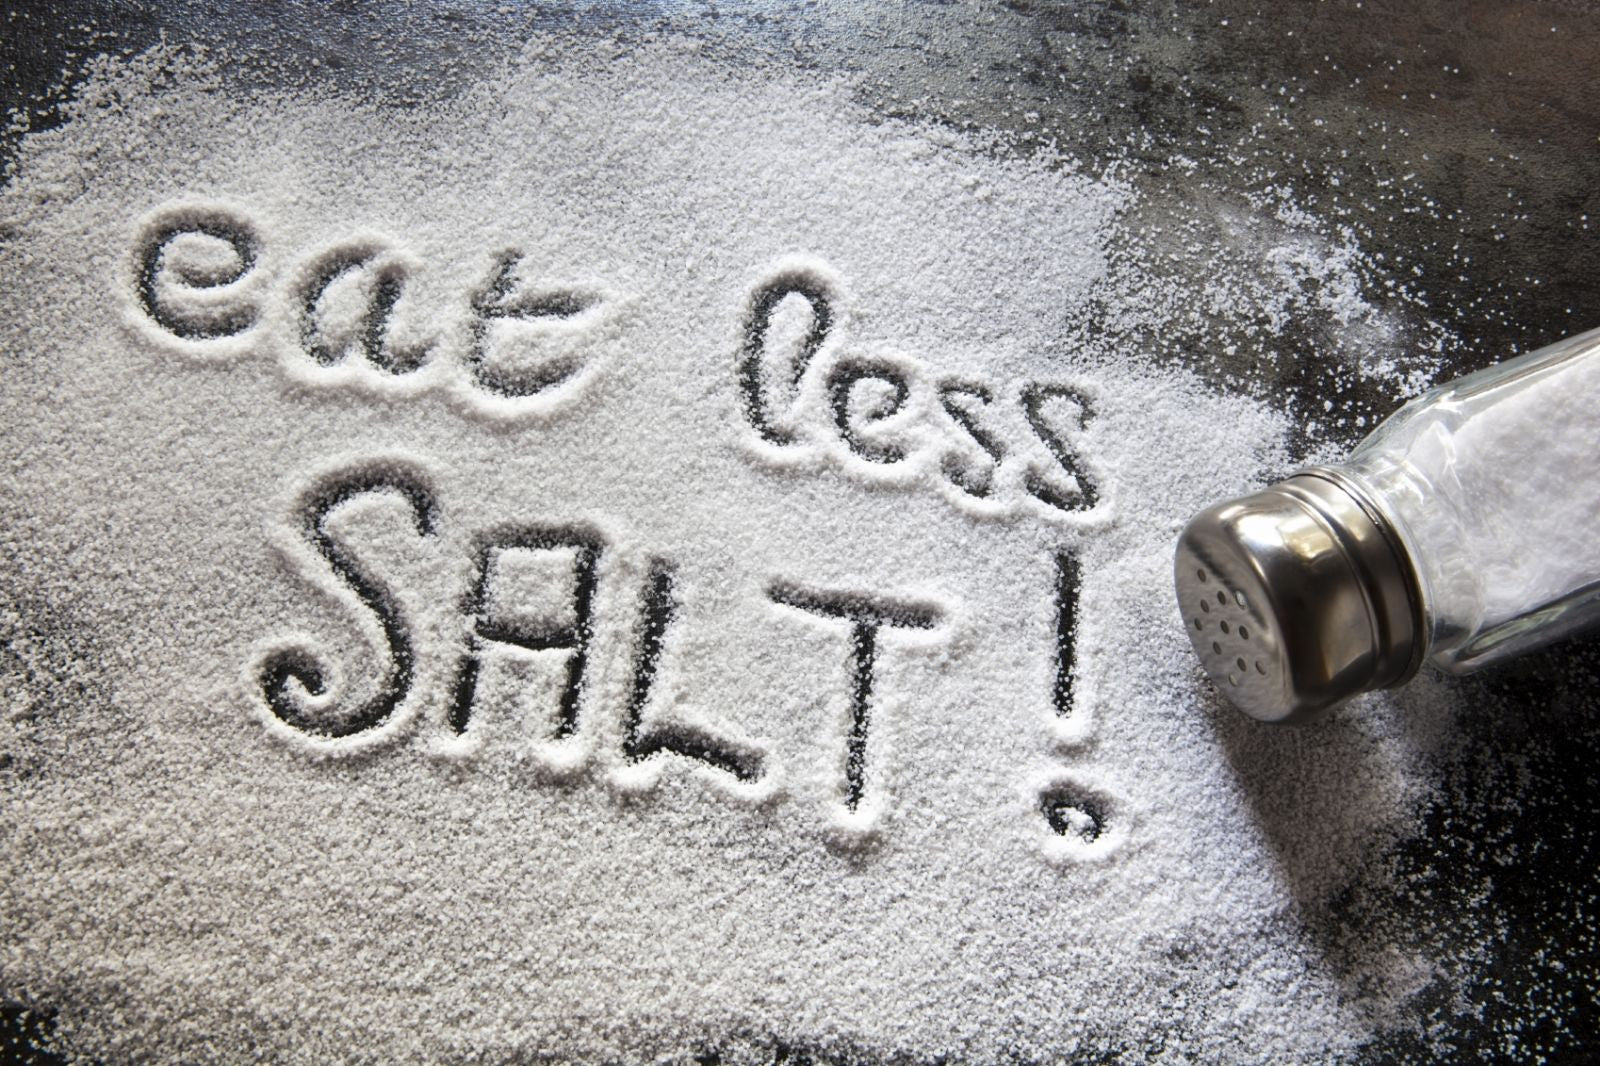 Constantly waking up to pee at night? Eat less salt, says study.